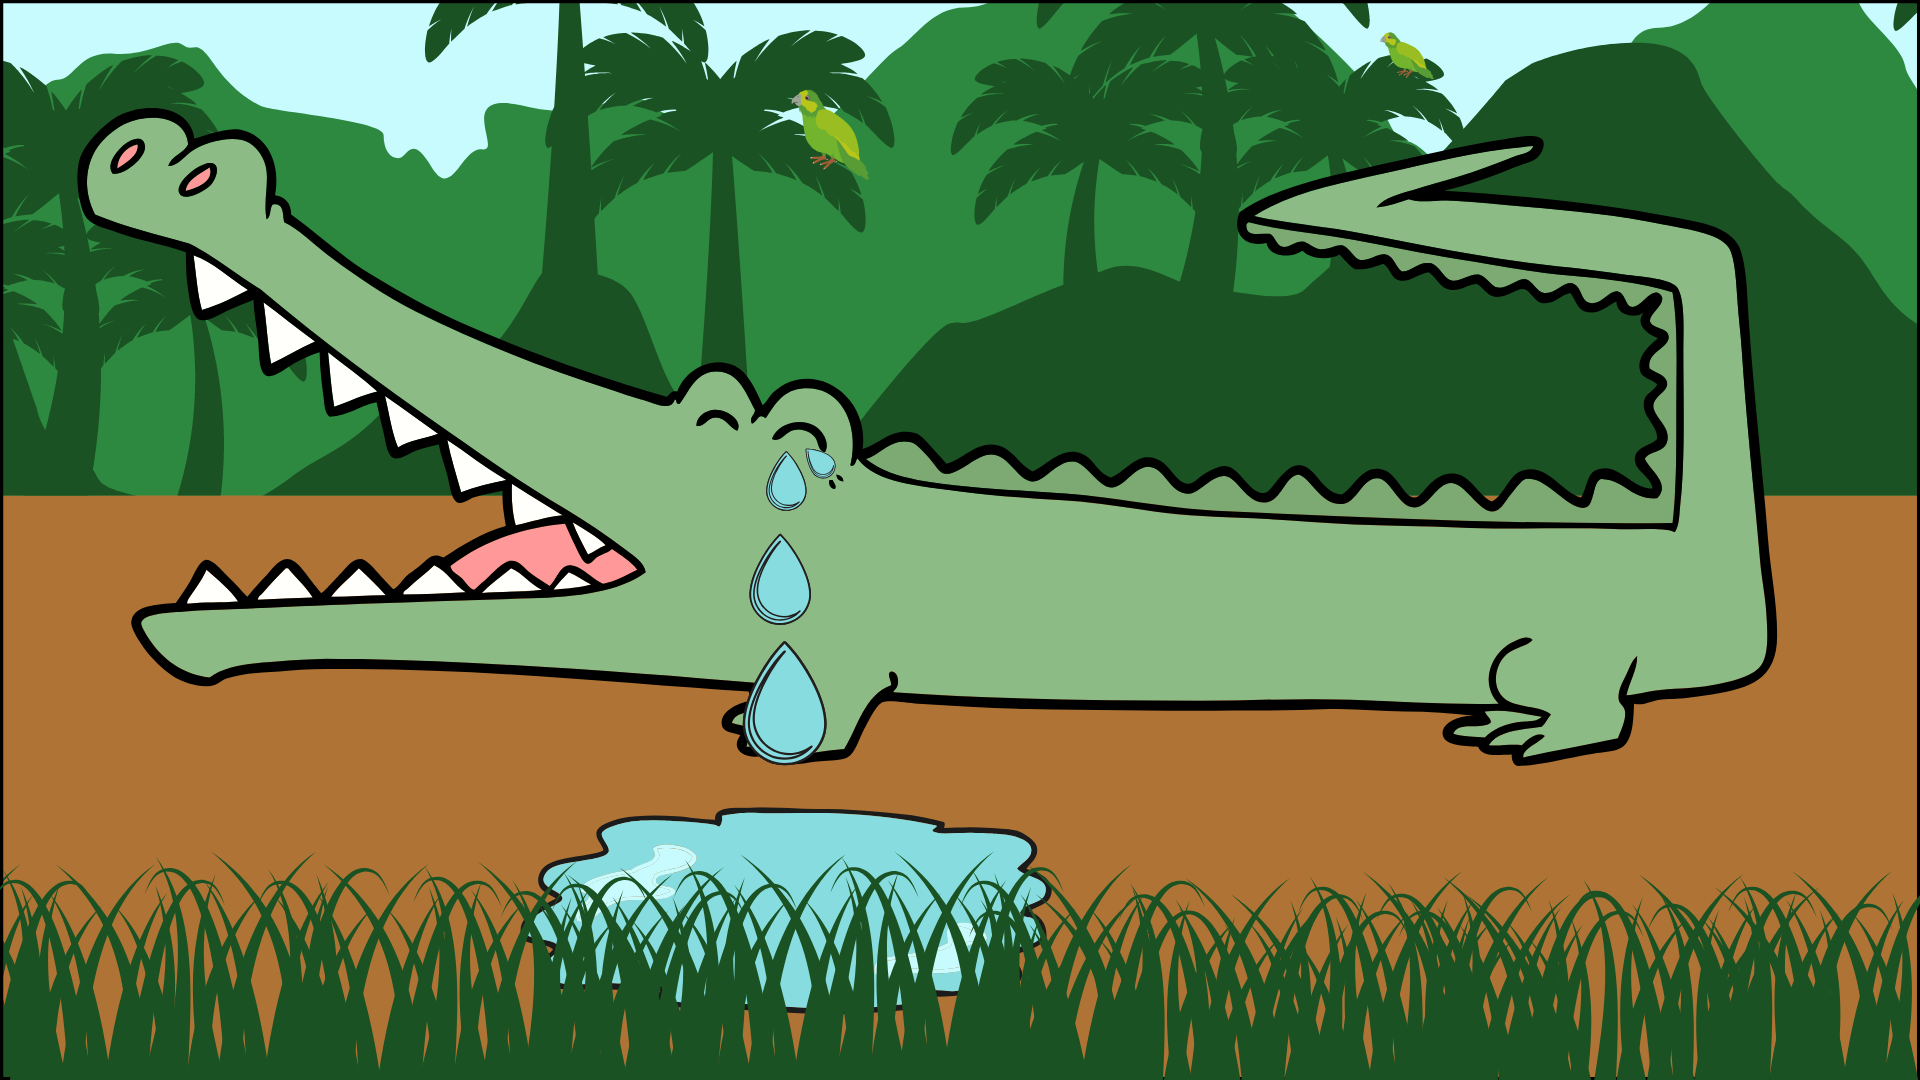 Crocodile crying